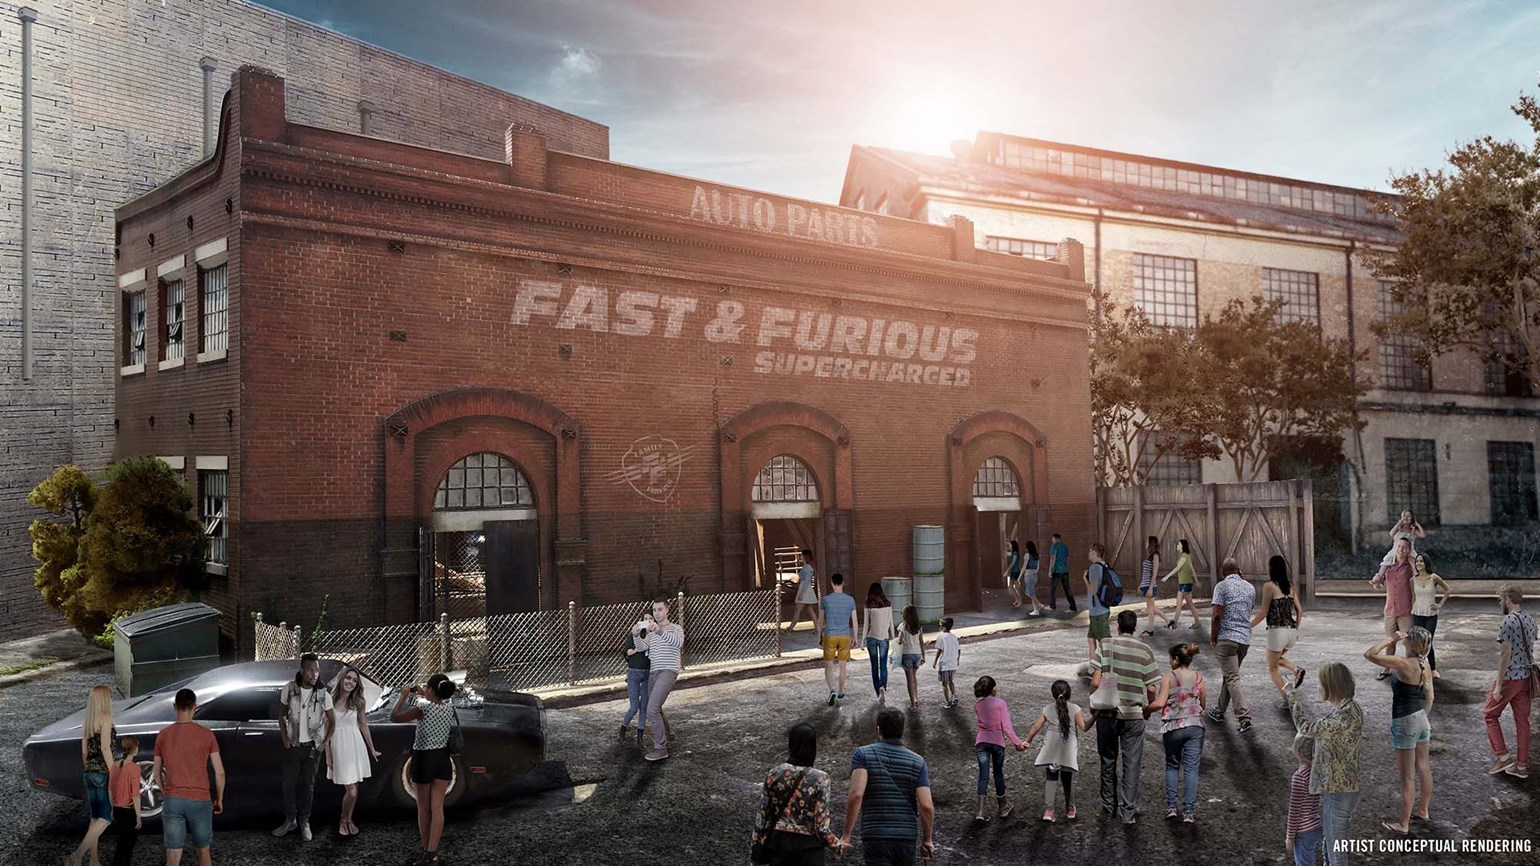 Fast & Furious attraction to open at Universal Orlando in spring